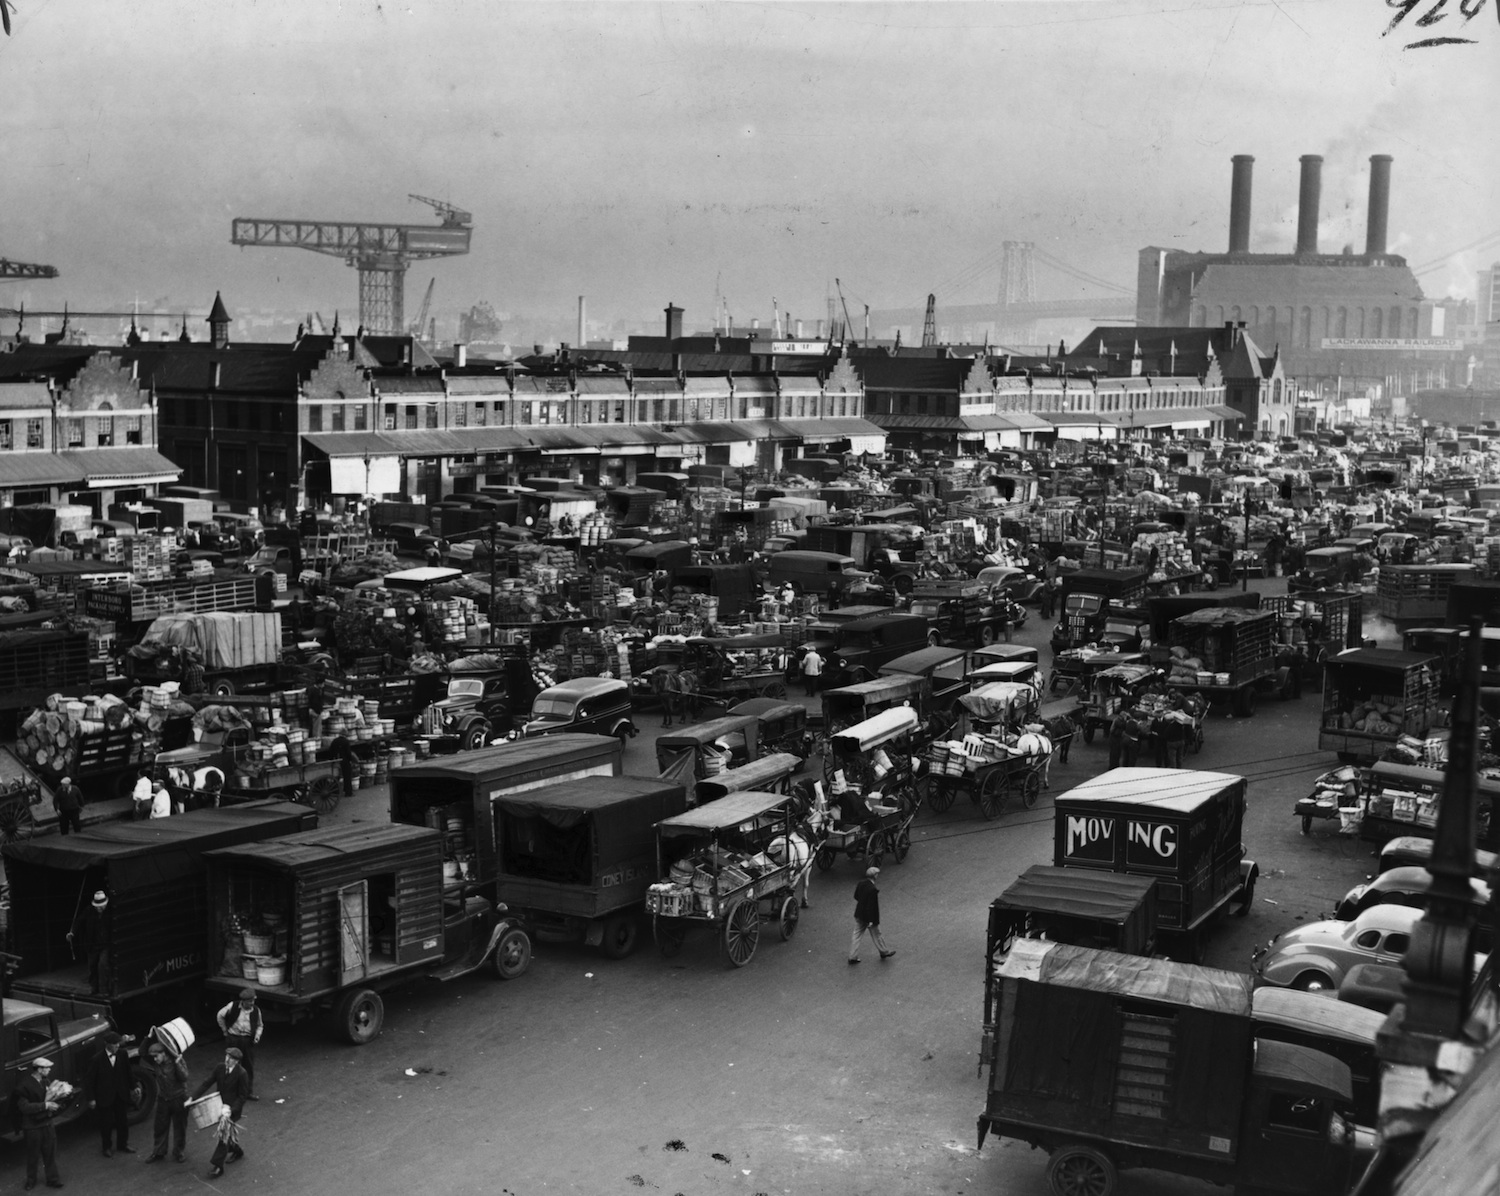 THE MARKET IN SEPTEMBER, 1940 - PHOTO BY AL AUMULLER, LIBRARY OF CONGRESS